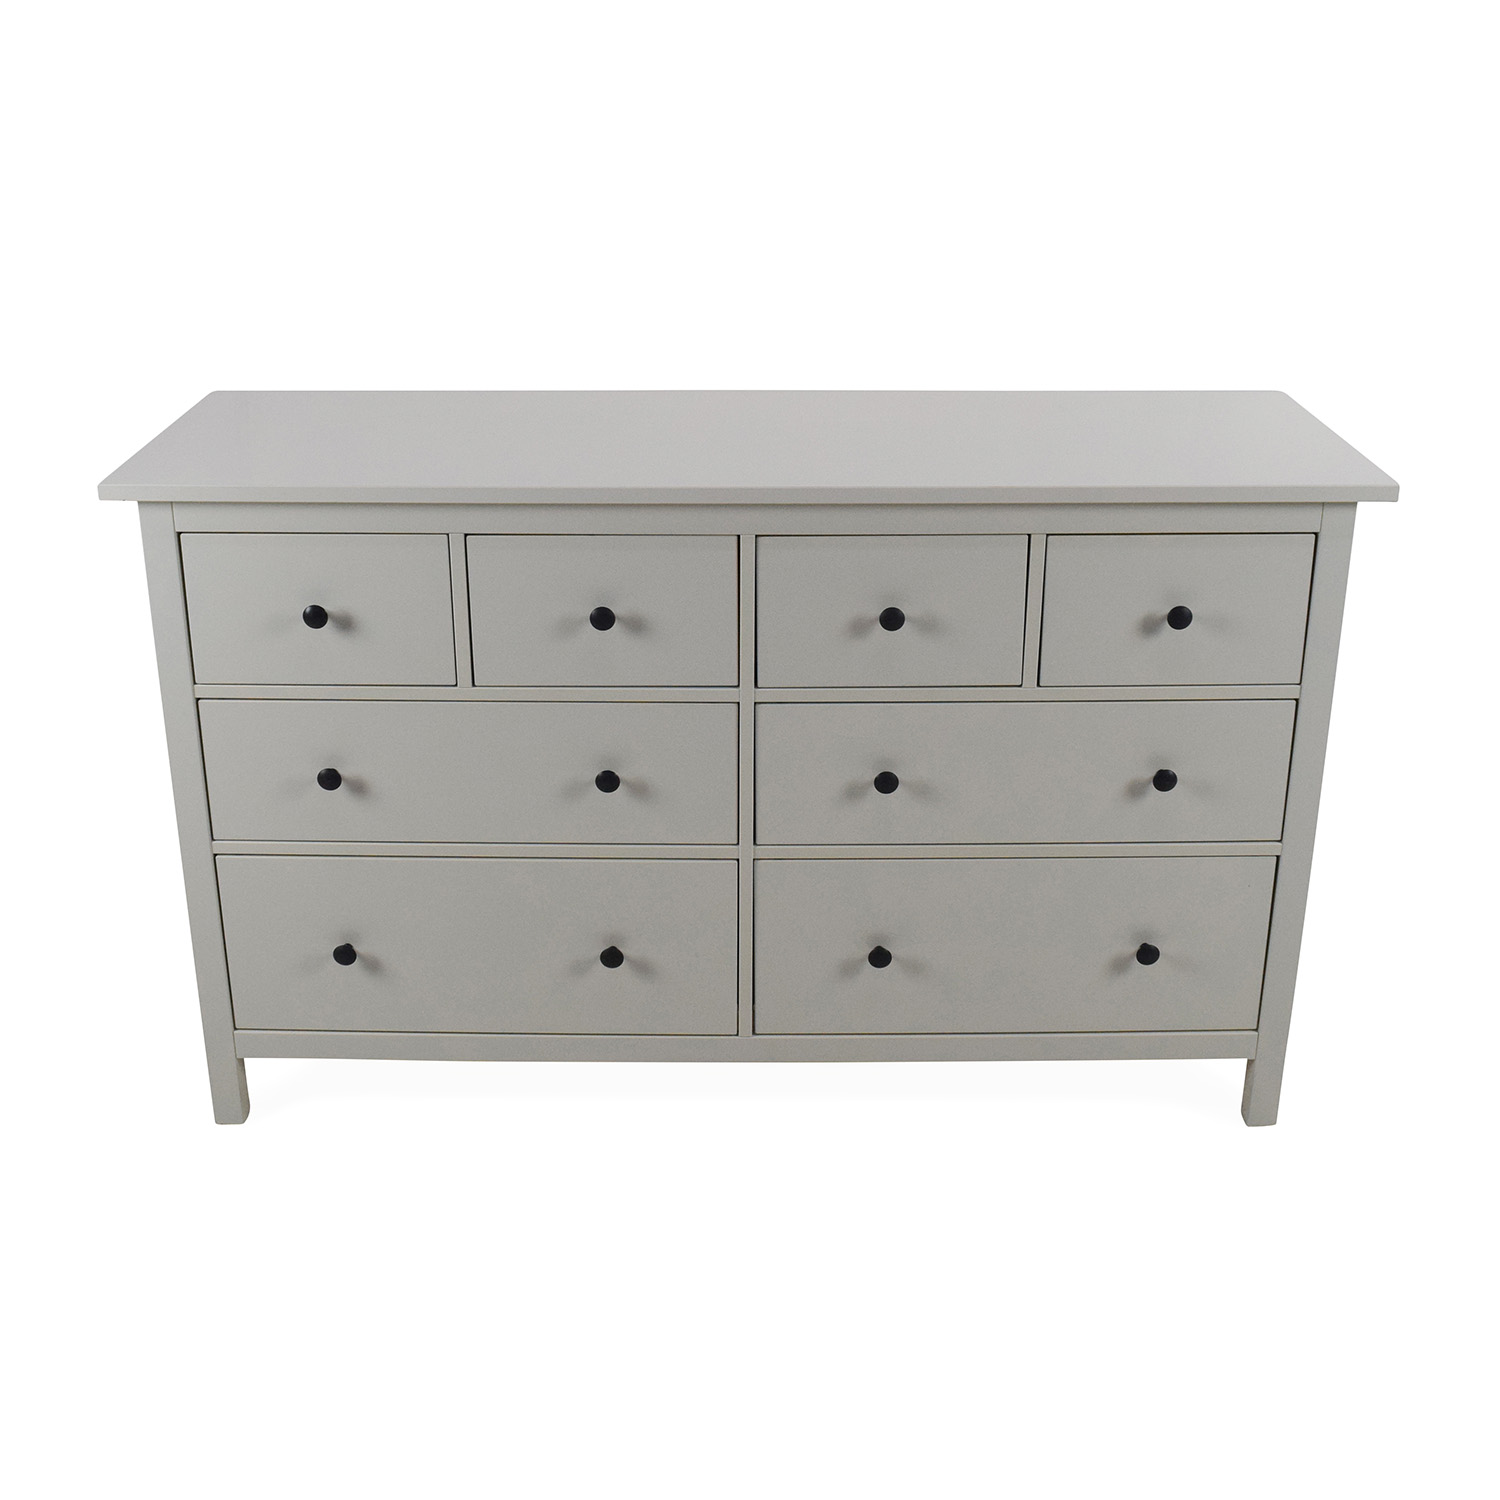 IKEA IKEA HEMNES 8-Drawer Dresser coupon